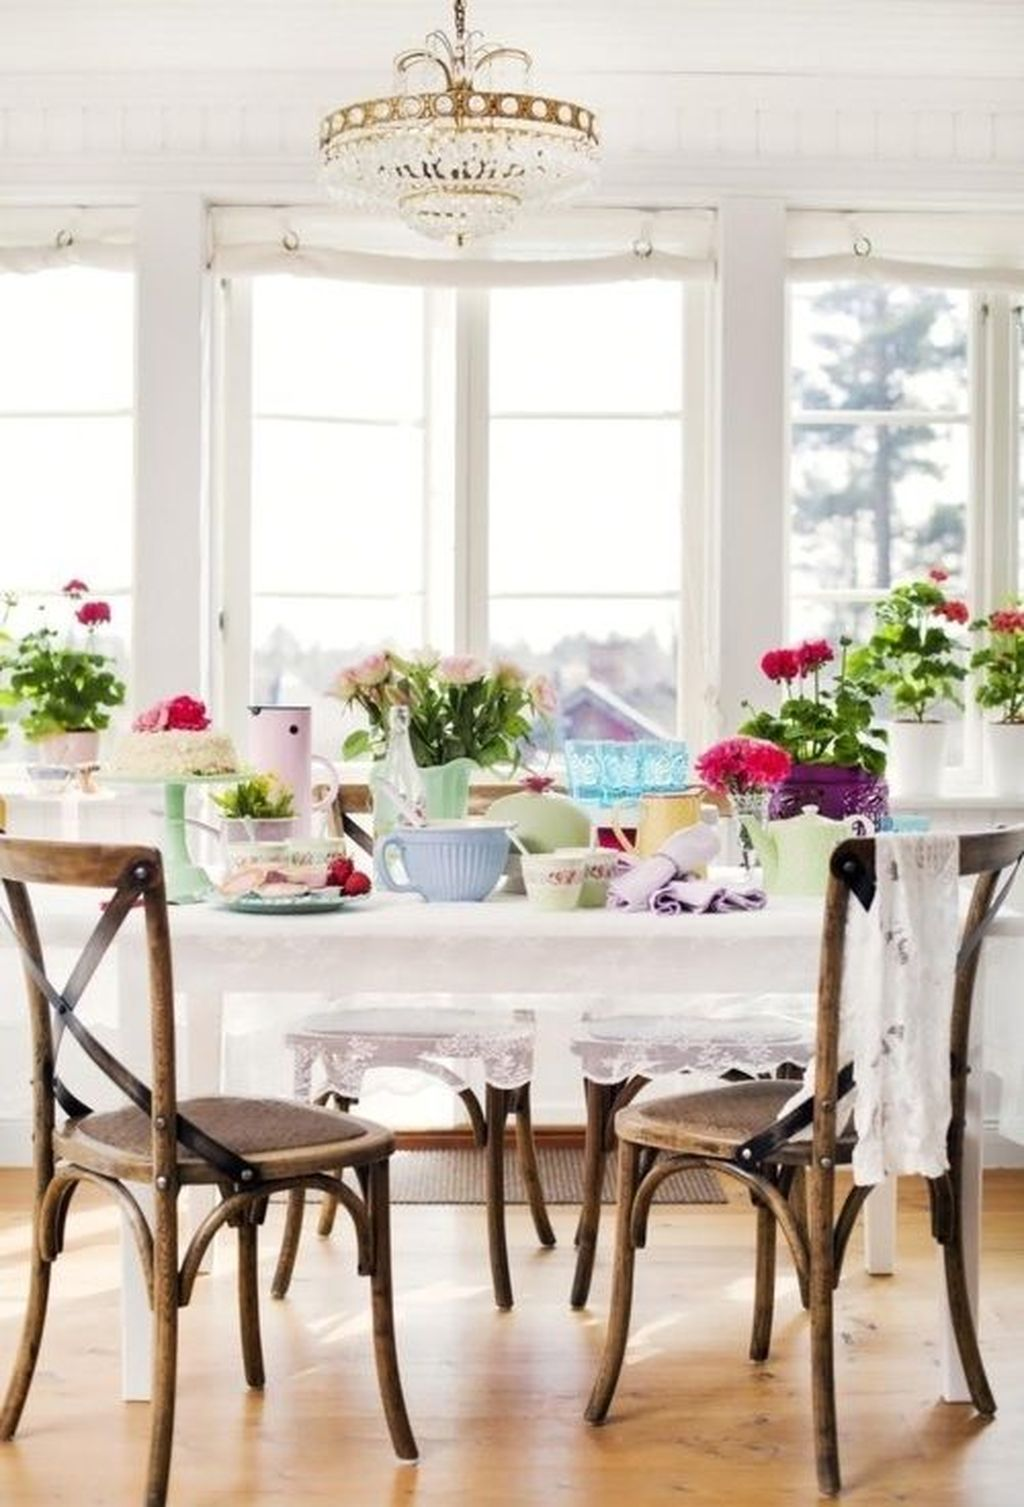 Stunning Romantic Dining Room Decor Ideas Best For Valentines Day 32